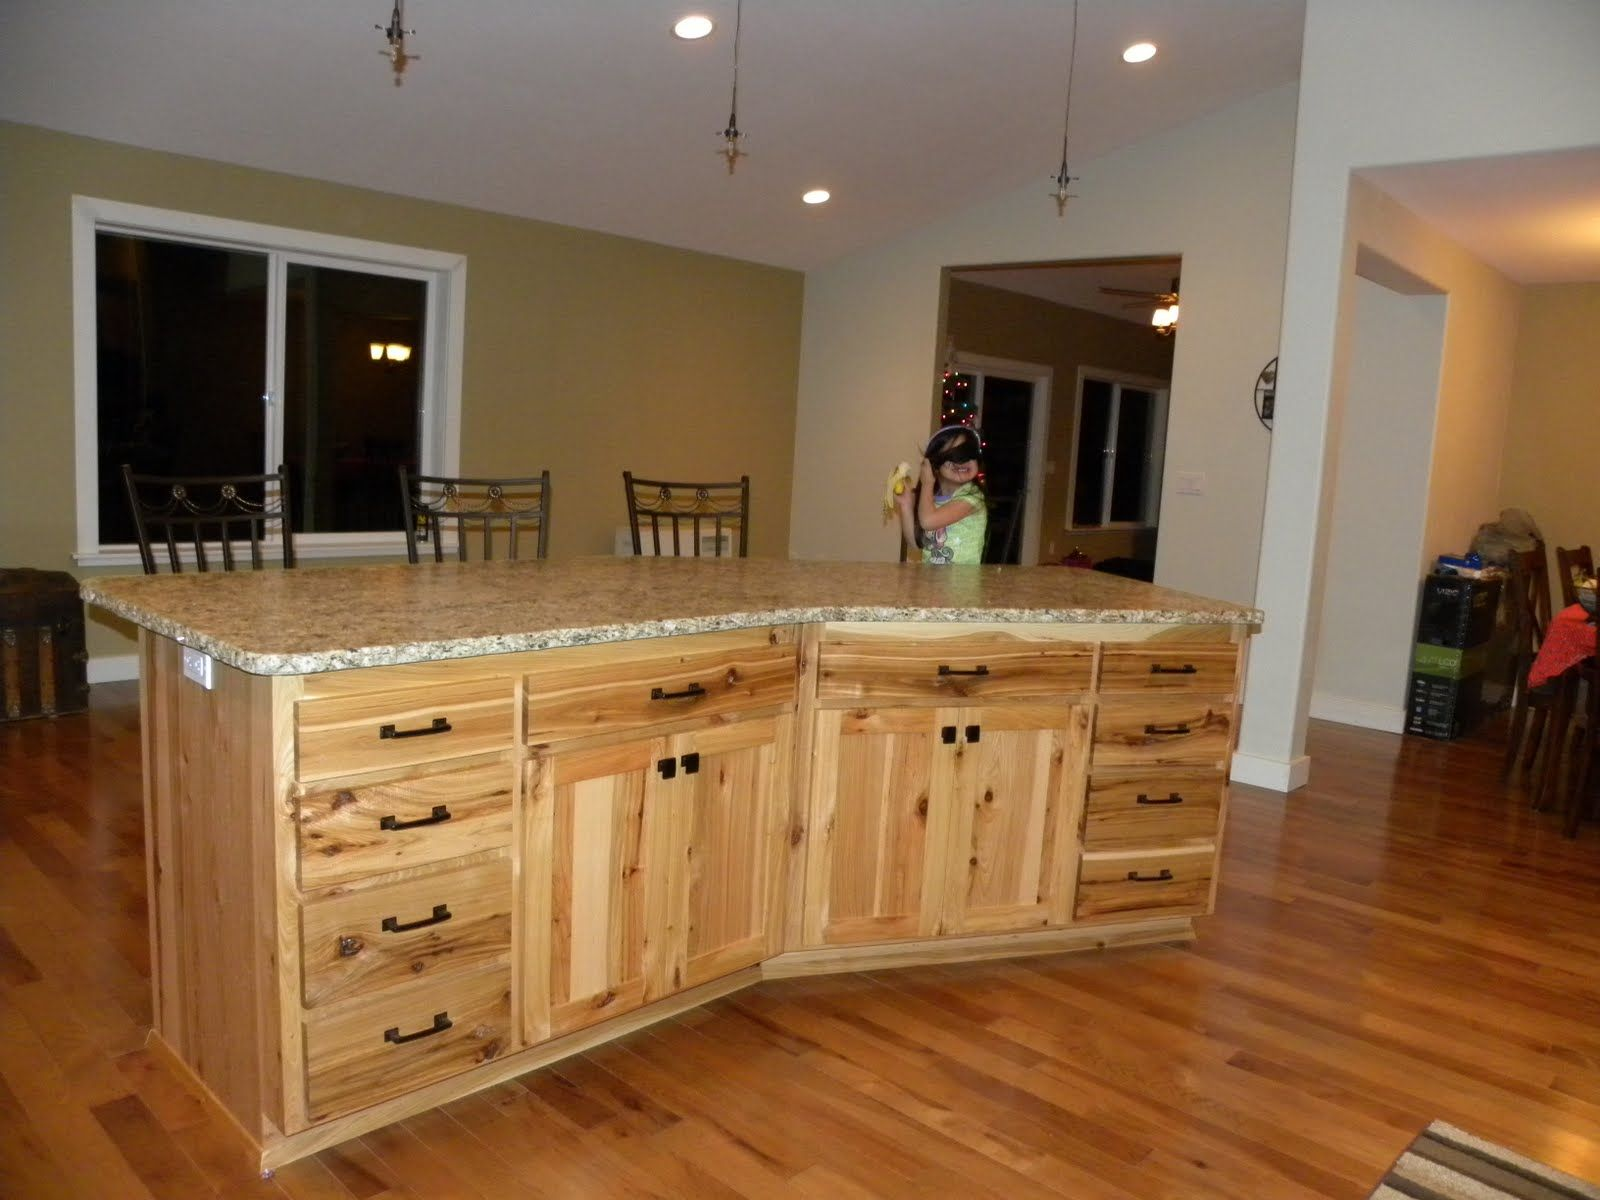 Hickory Kitchen Cabinets Table Sets For Small Spaces Related Image Pinterest